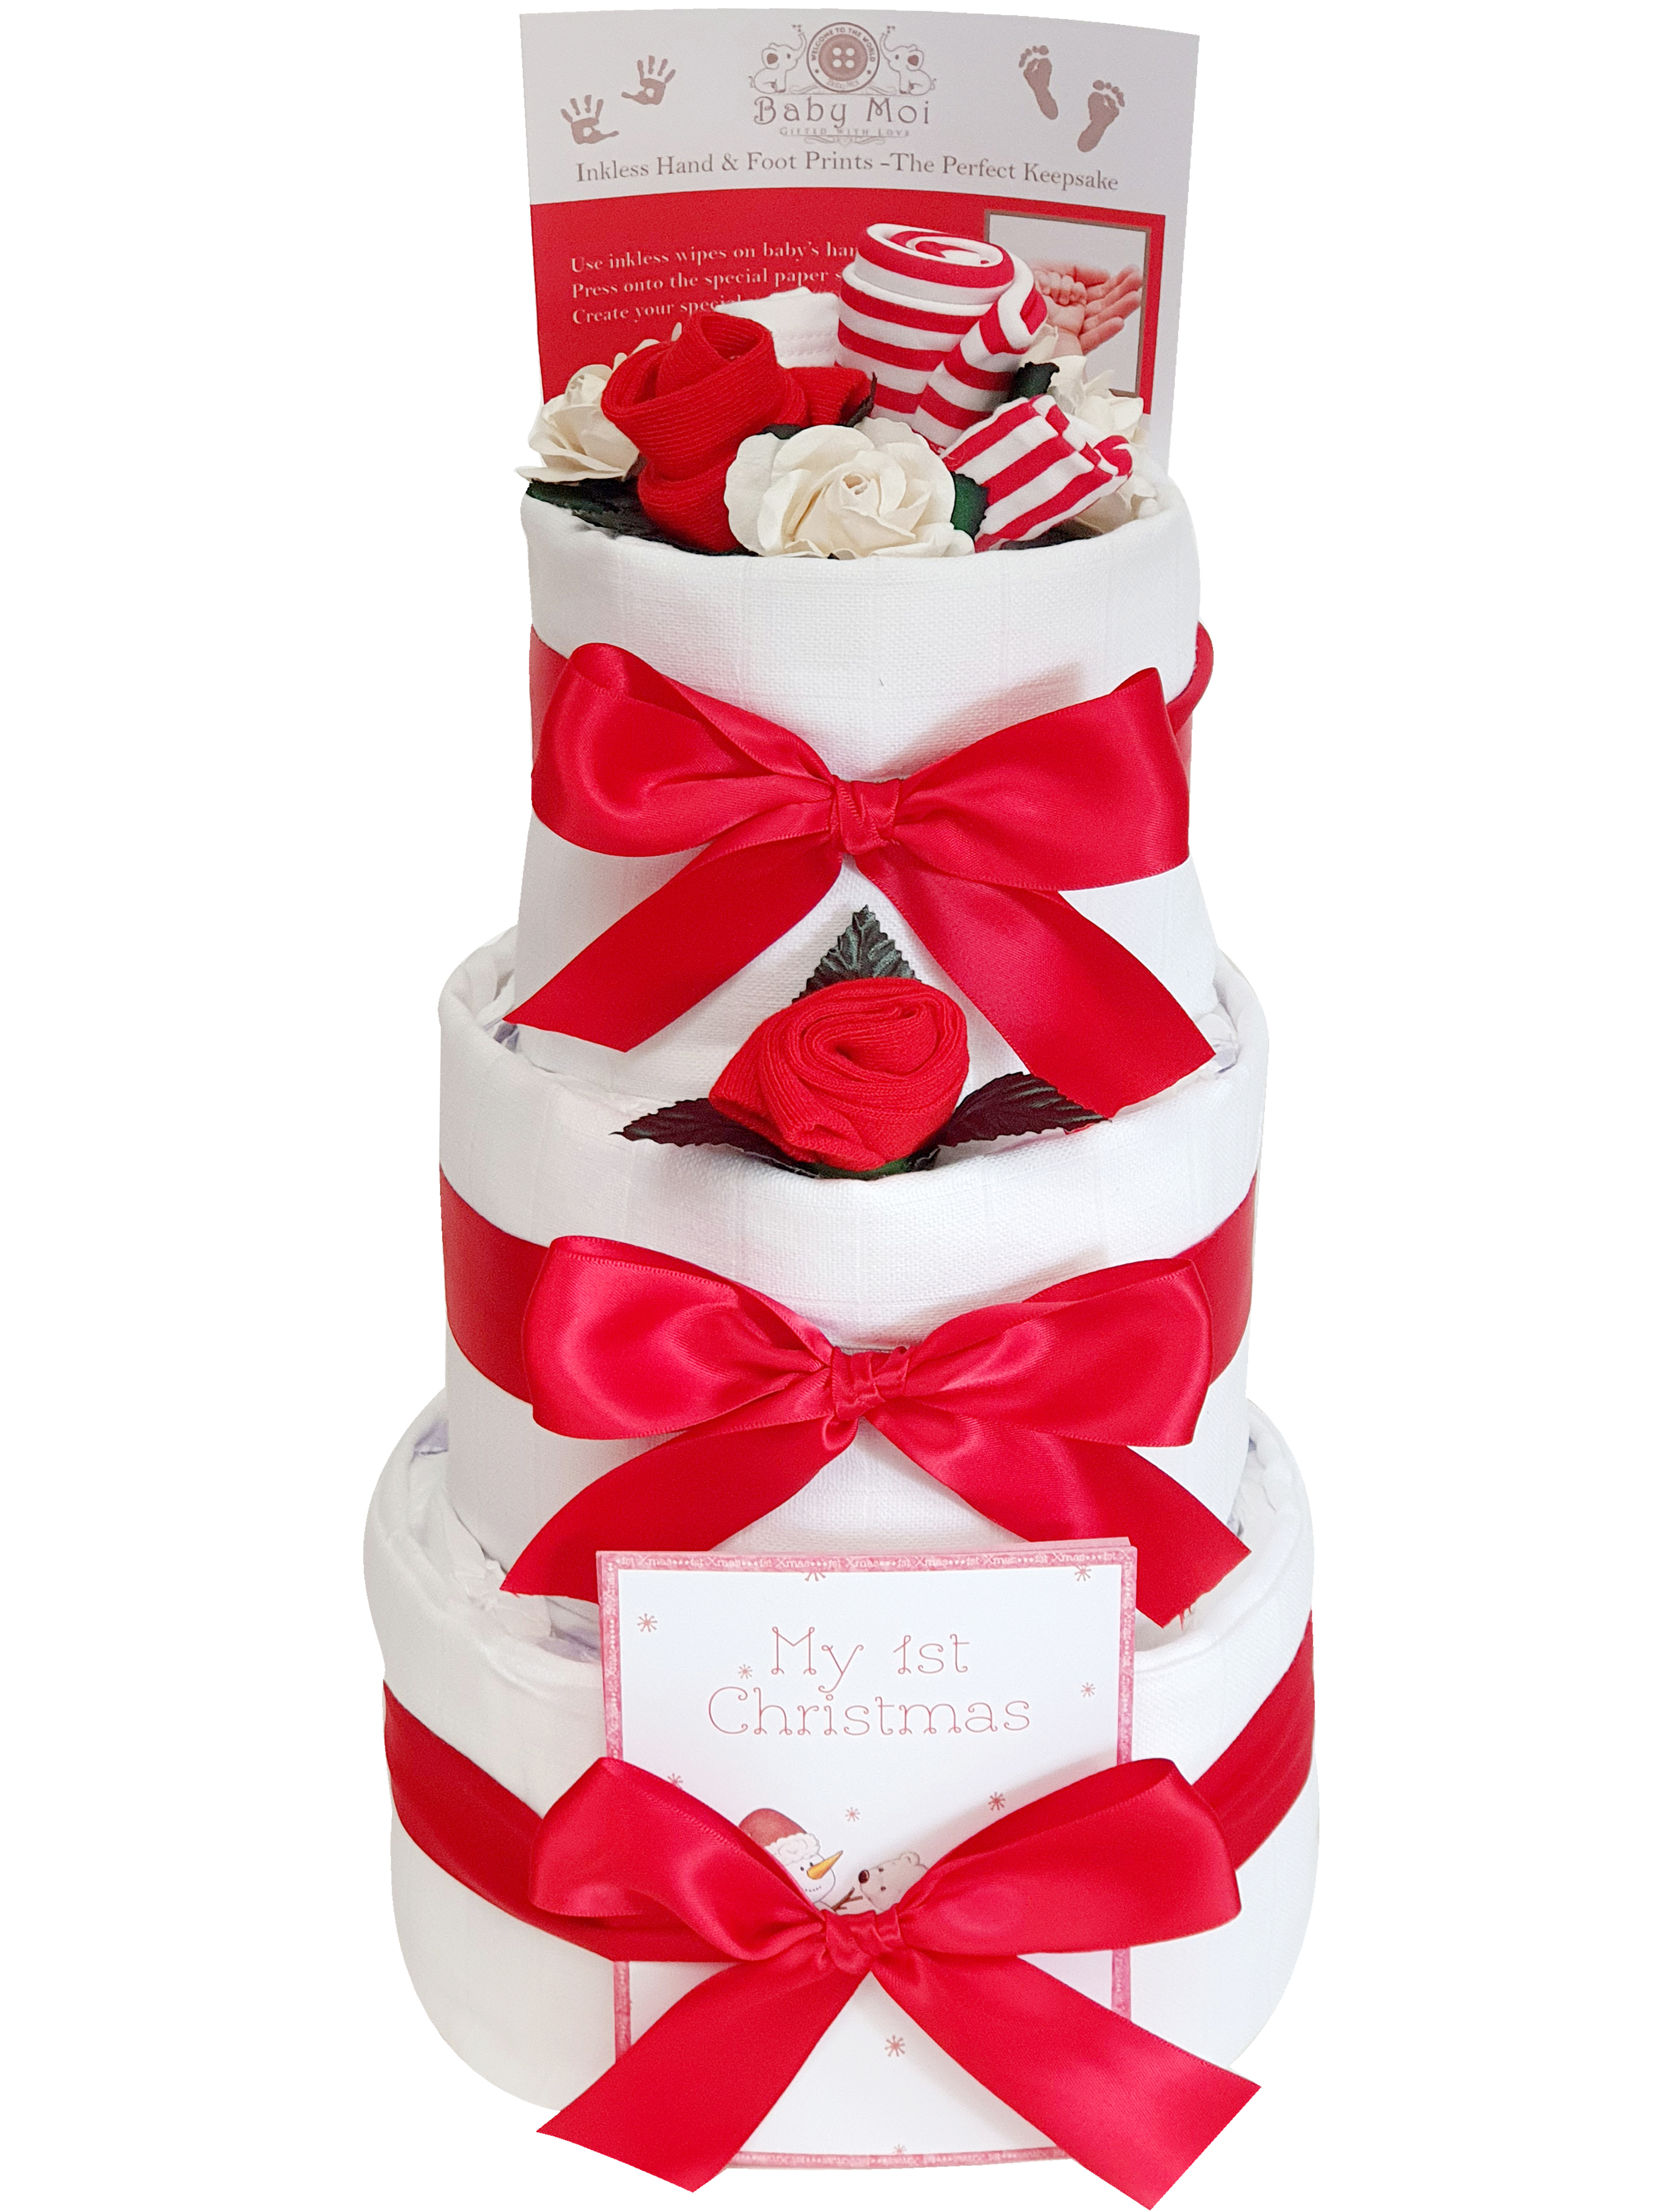 Babys 1st Christmas Gift 3 Tier Nappy Cake